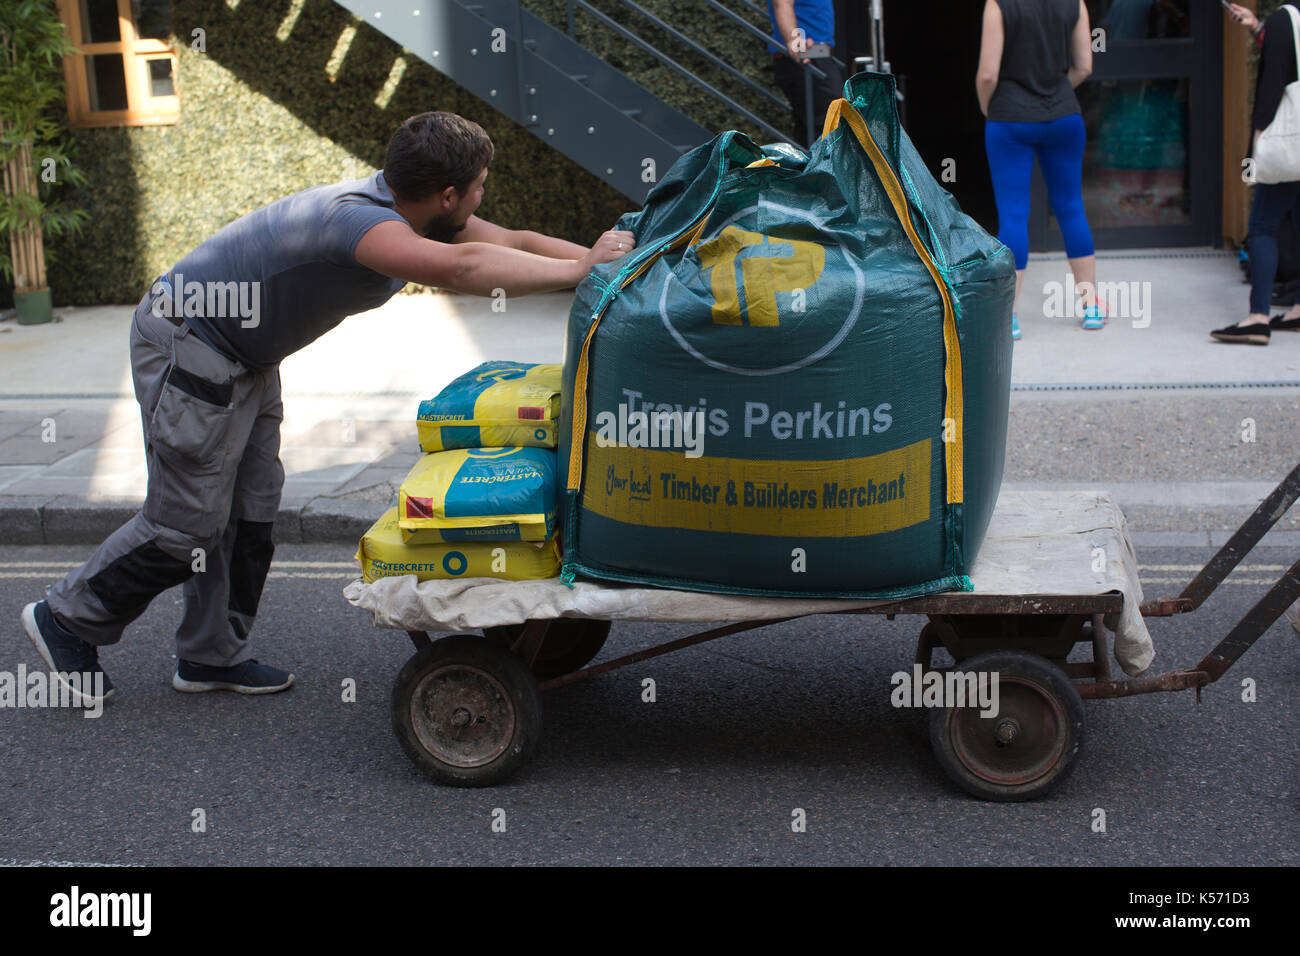 Travis perkins stock photos travis perkins stock images alamy man pushing trolley with travis perkins timber builders merchant cement and sand for construction rubansaba